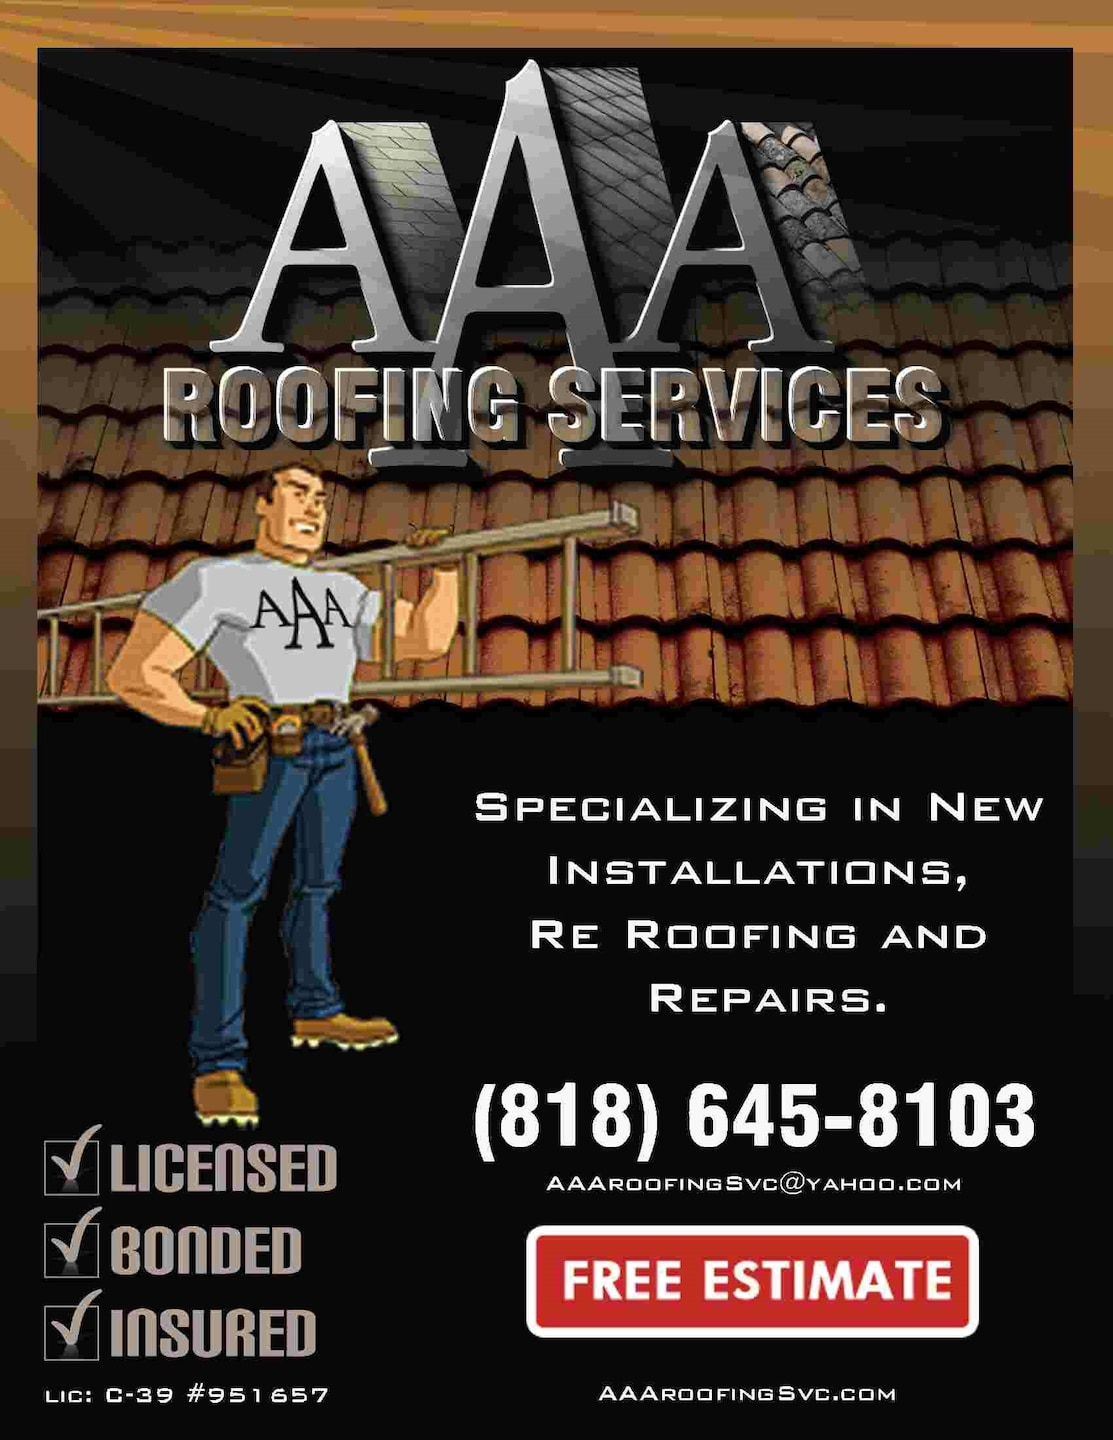 AAA Roofing and Gutter Services